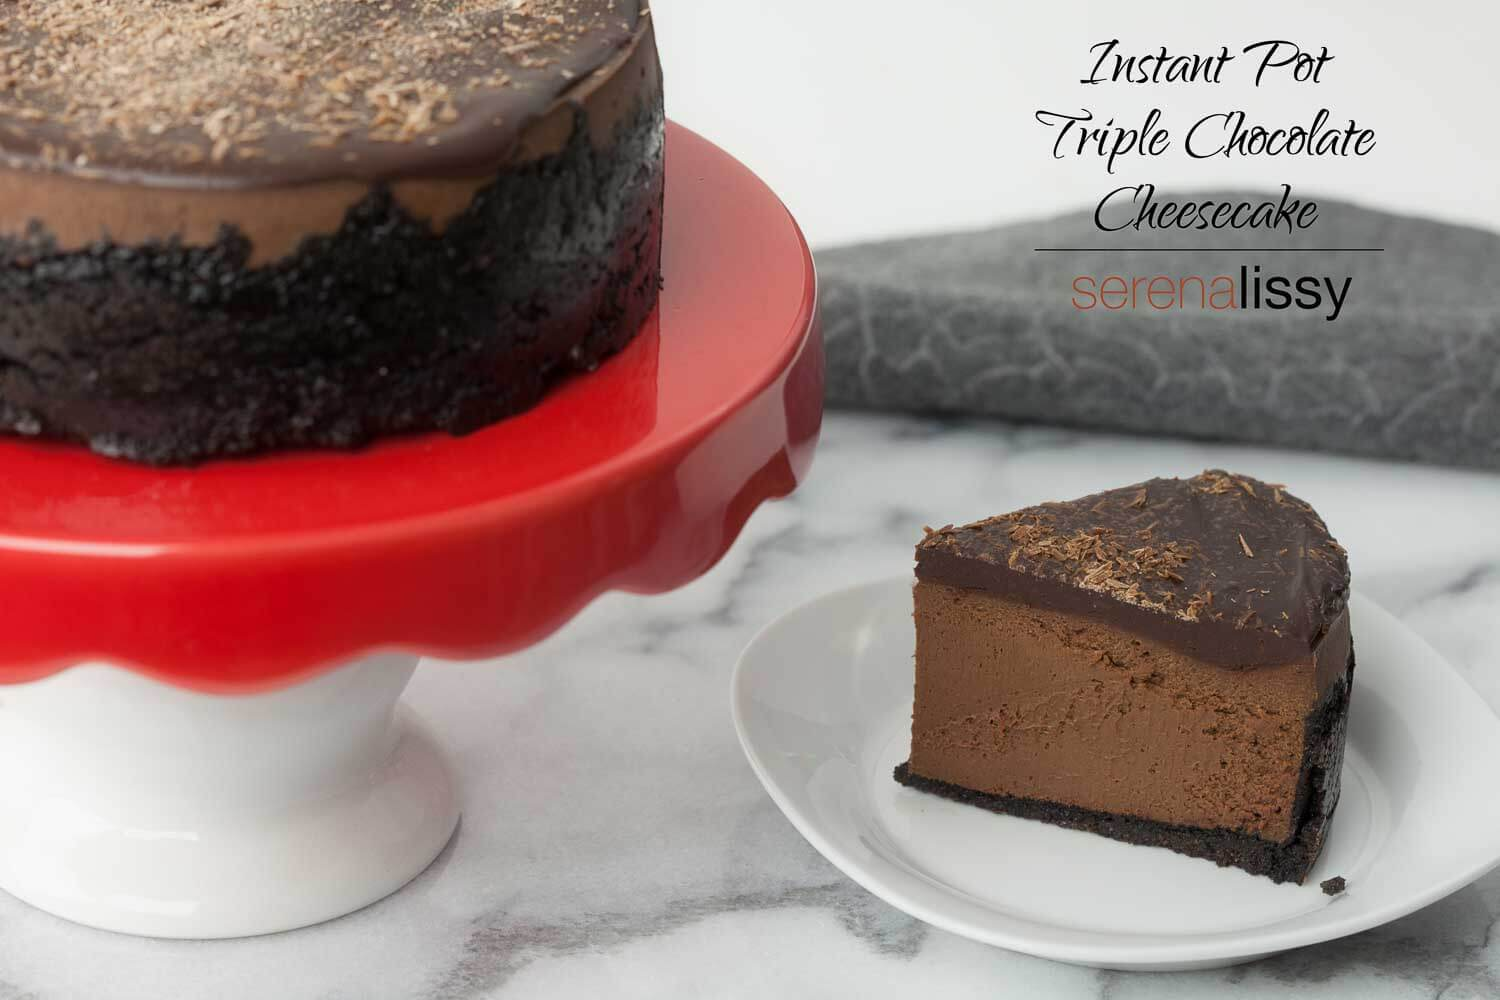 Instant Pot Triple Chocolate Cheesecake